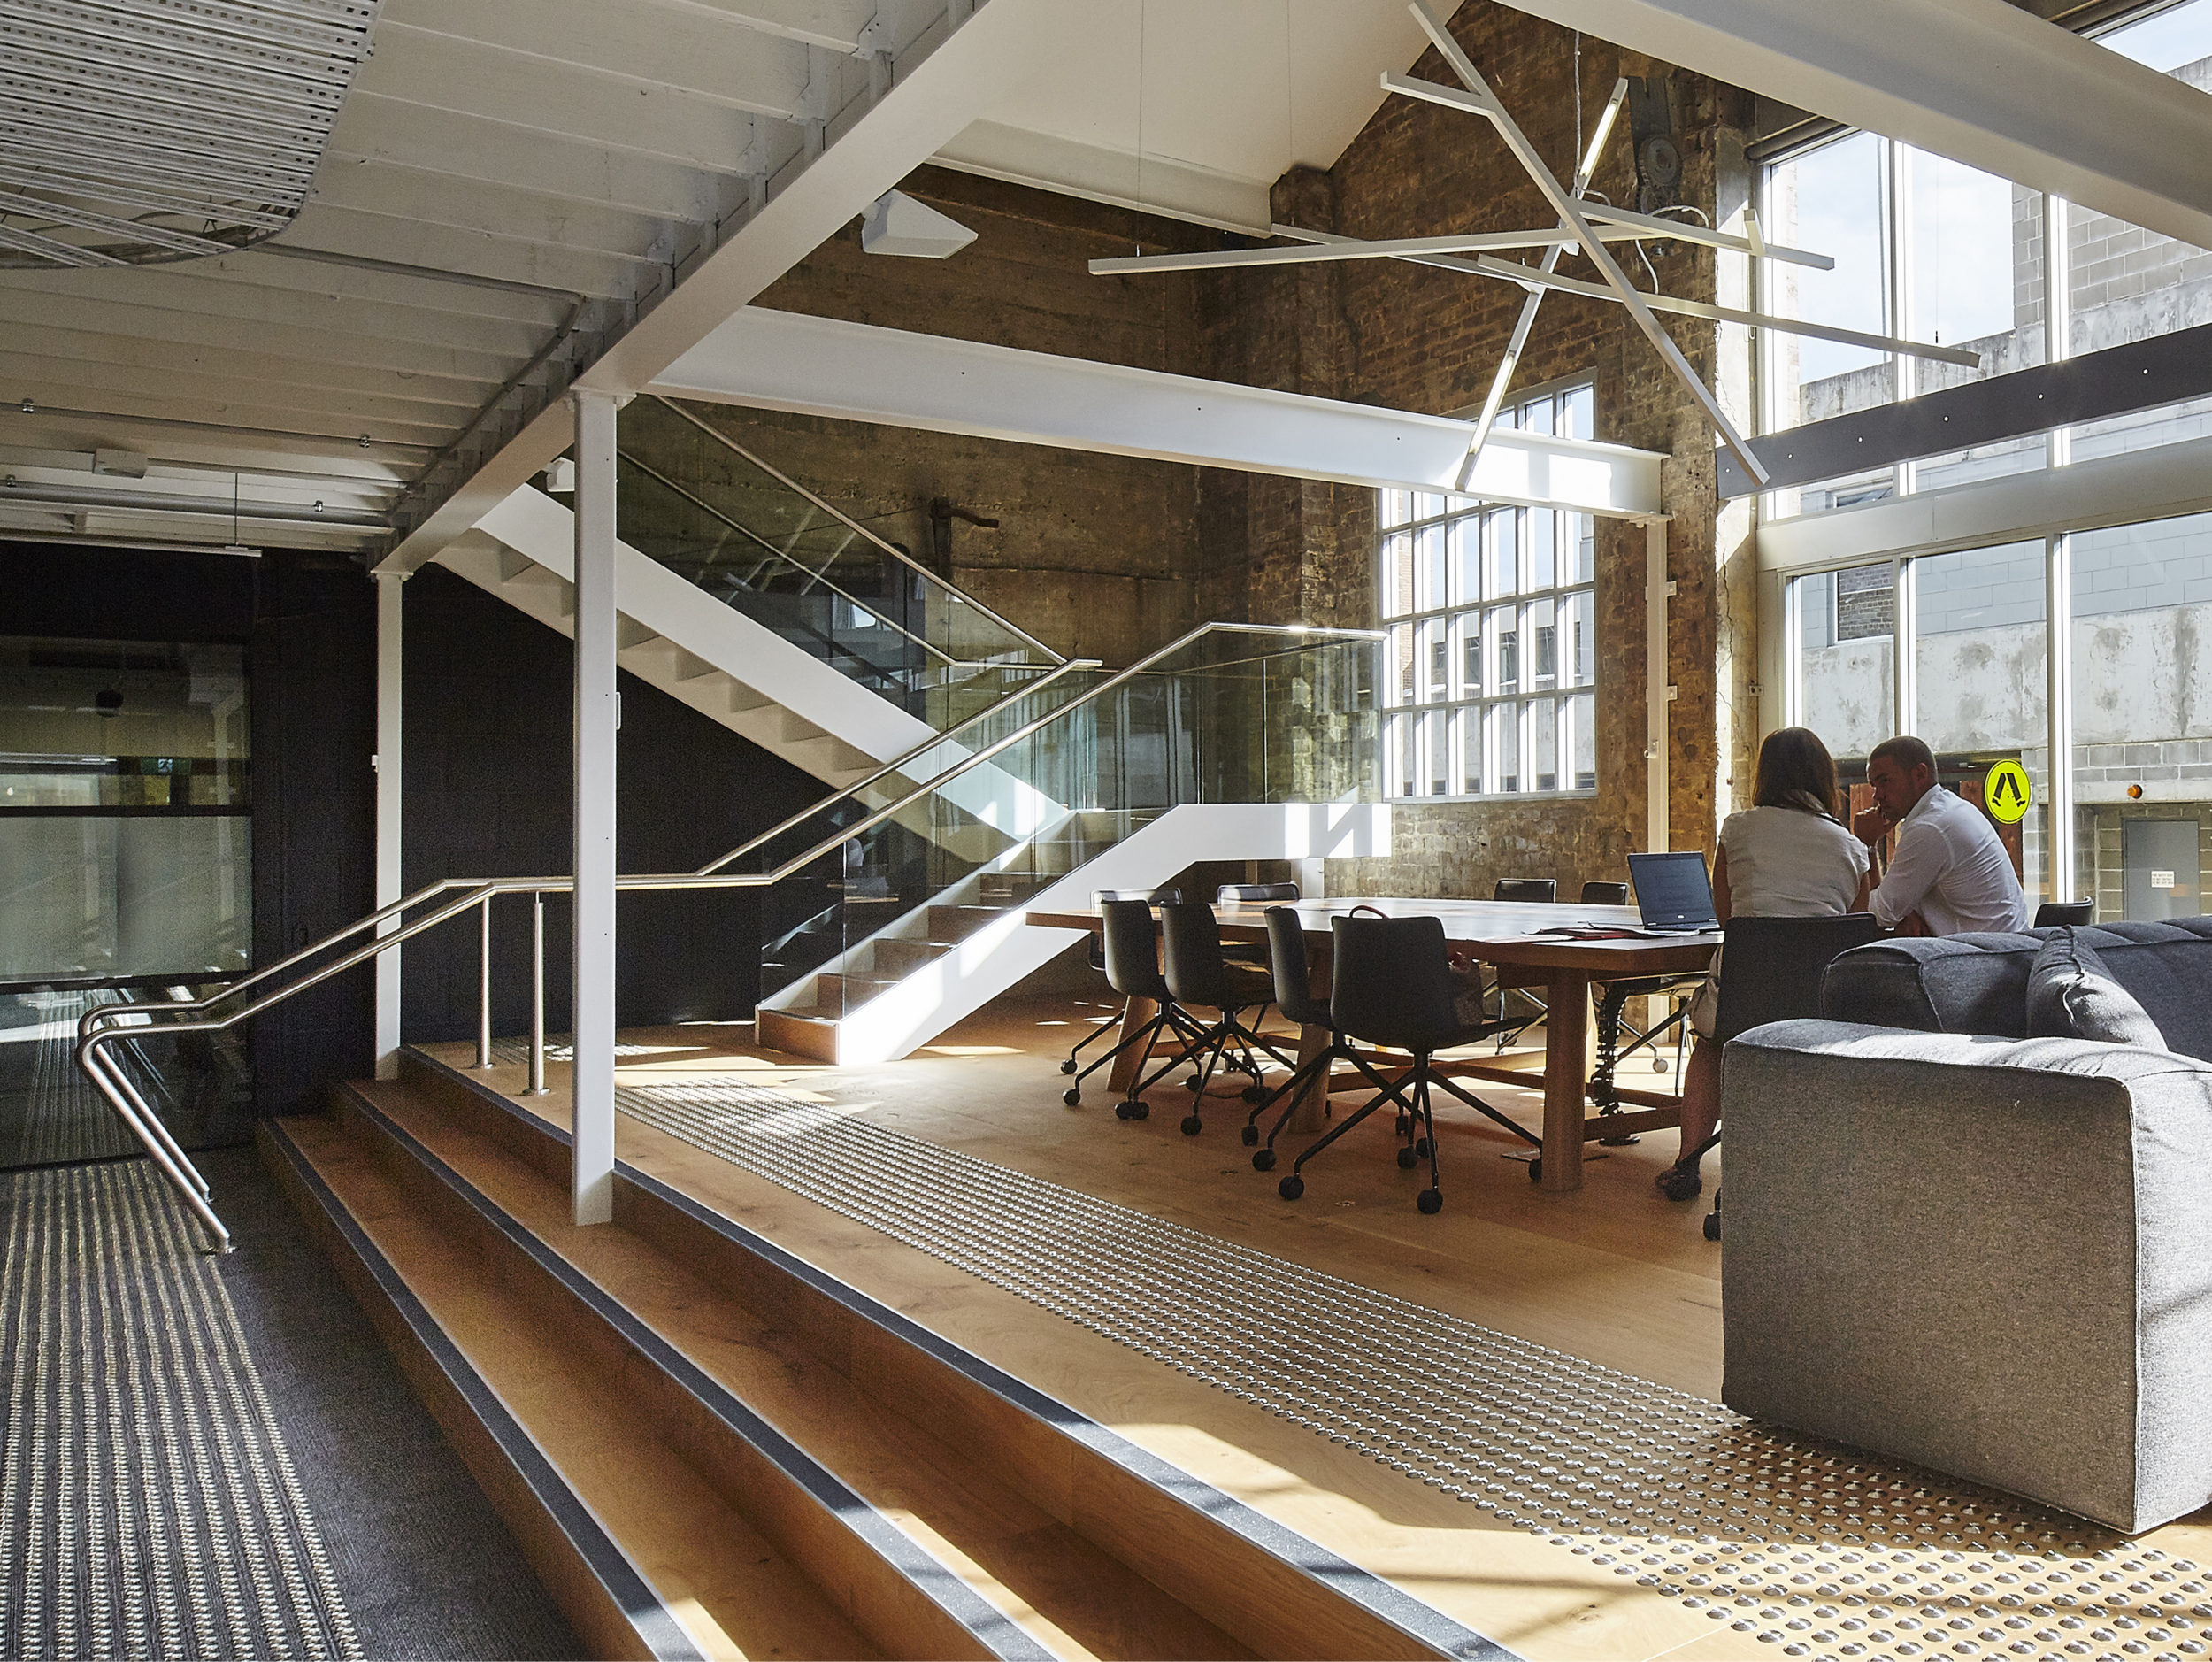 ACTIVE METAL GENESIS CARE STRUCTURAL STAIR AND GLASS BALUSTRADE